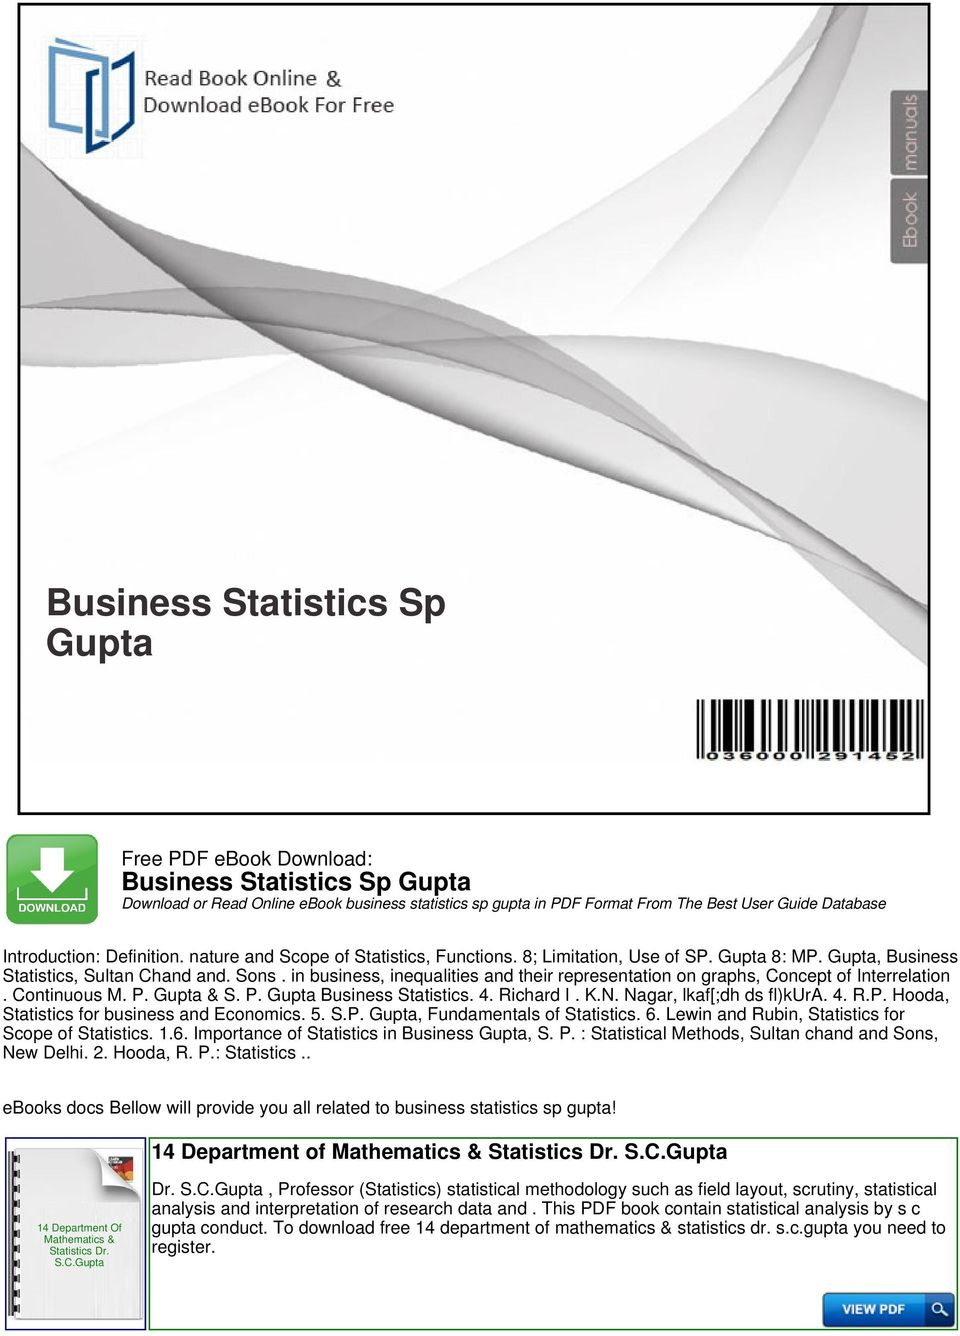 Business statistics sp gupta pdf in business inequalities and their representation on graphs concept of interrelation continuous m p fandeluxe